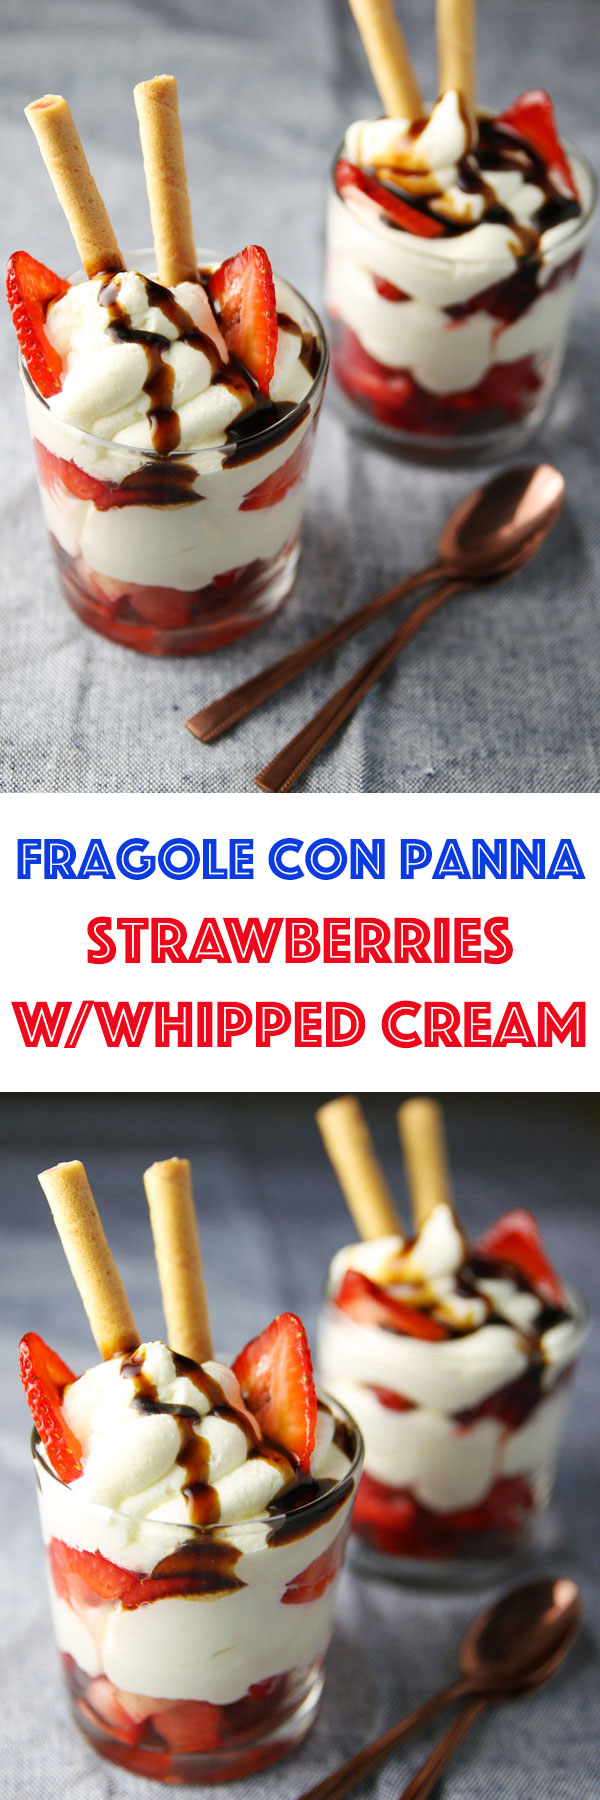 Fragole Con Panna (Strawberries with Whipped Cream) - This has to be one of the easiest, most tastiest desserts ever! This is sure to impress any guest!